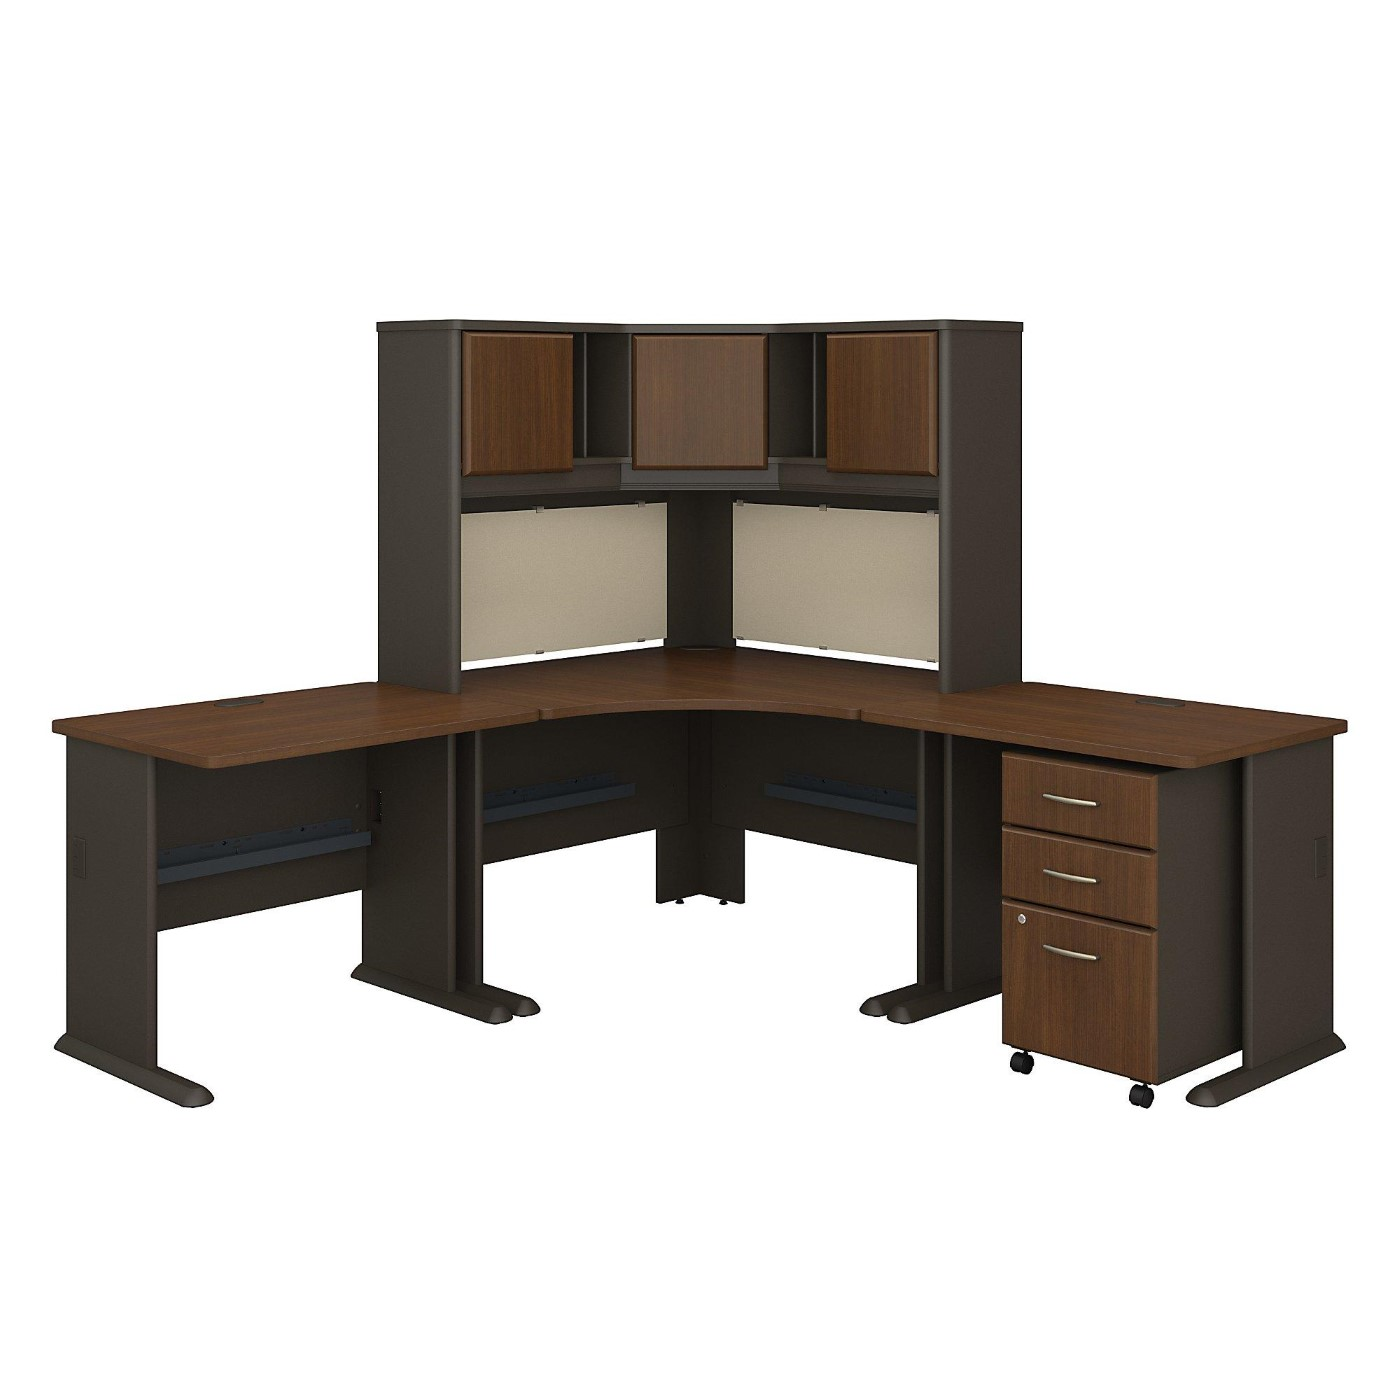 <font color=#c60><b>BUSH BUSINESS FURNITURE SERIES A 84W X 84D CORNER DESK WITH HUTCH AND MOBILE FILE CABINET. FREE SHIPPING</font></b>